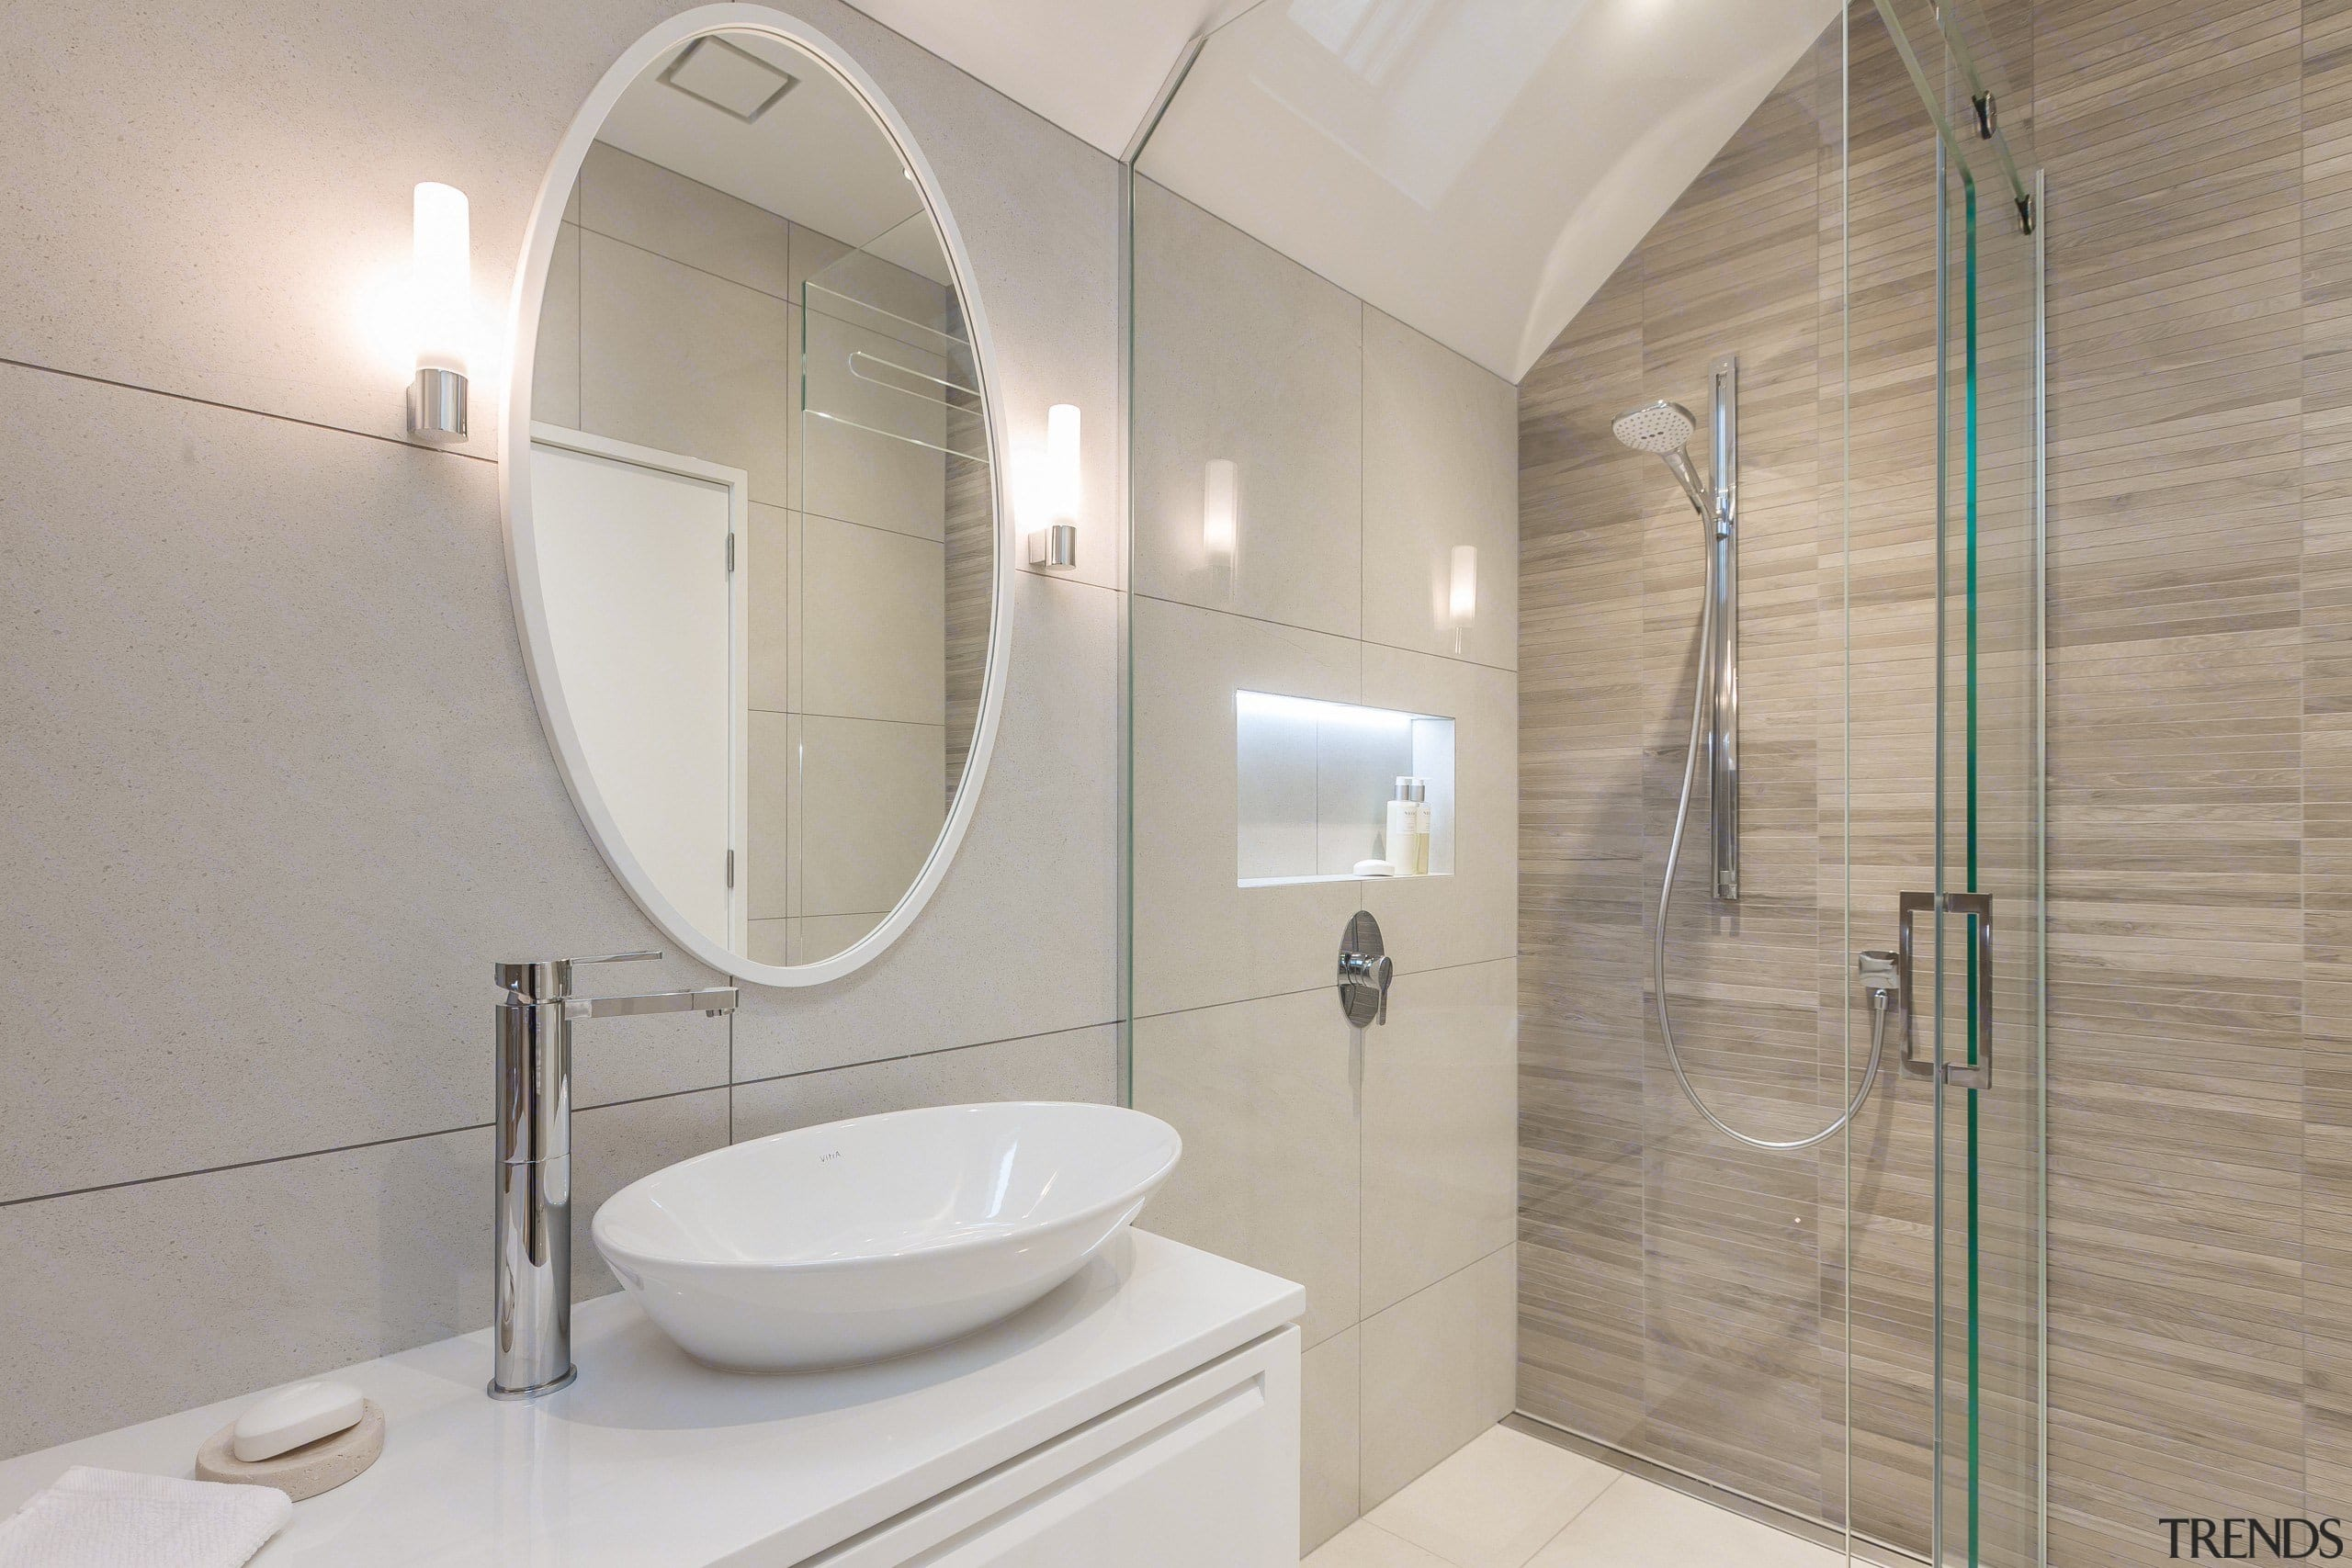 See the bathroom architecture, bathroom, home, interior design, plumbing fixture, property, real estate, room, tap, tile, gray